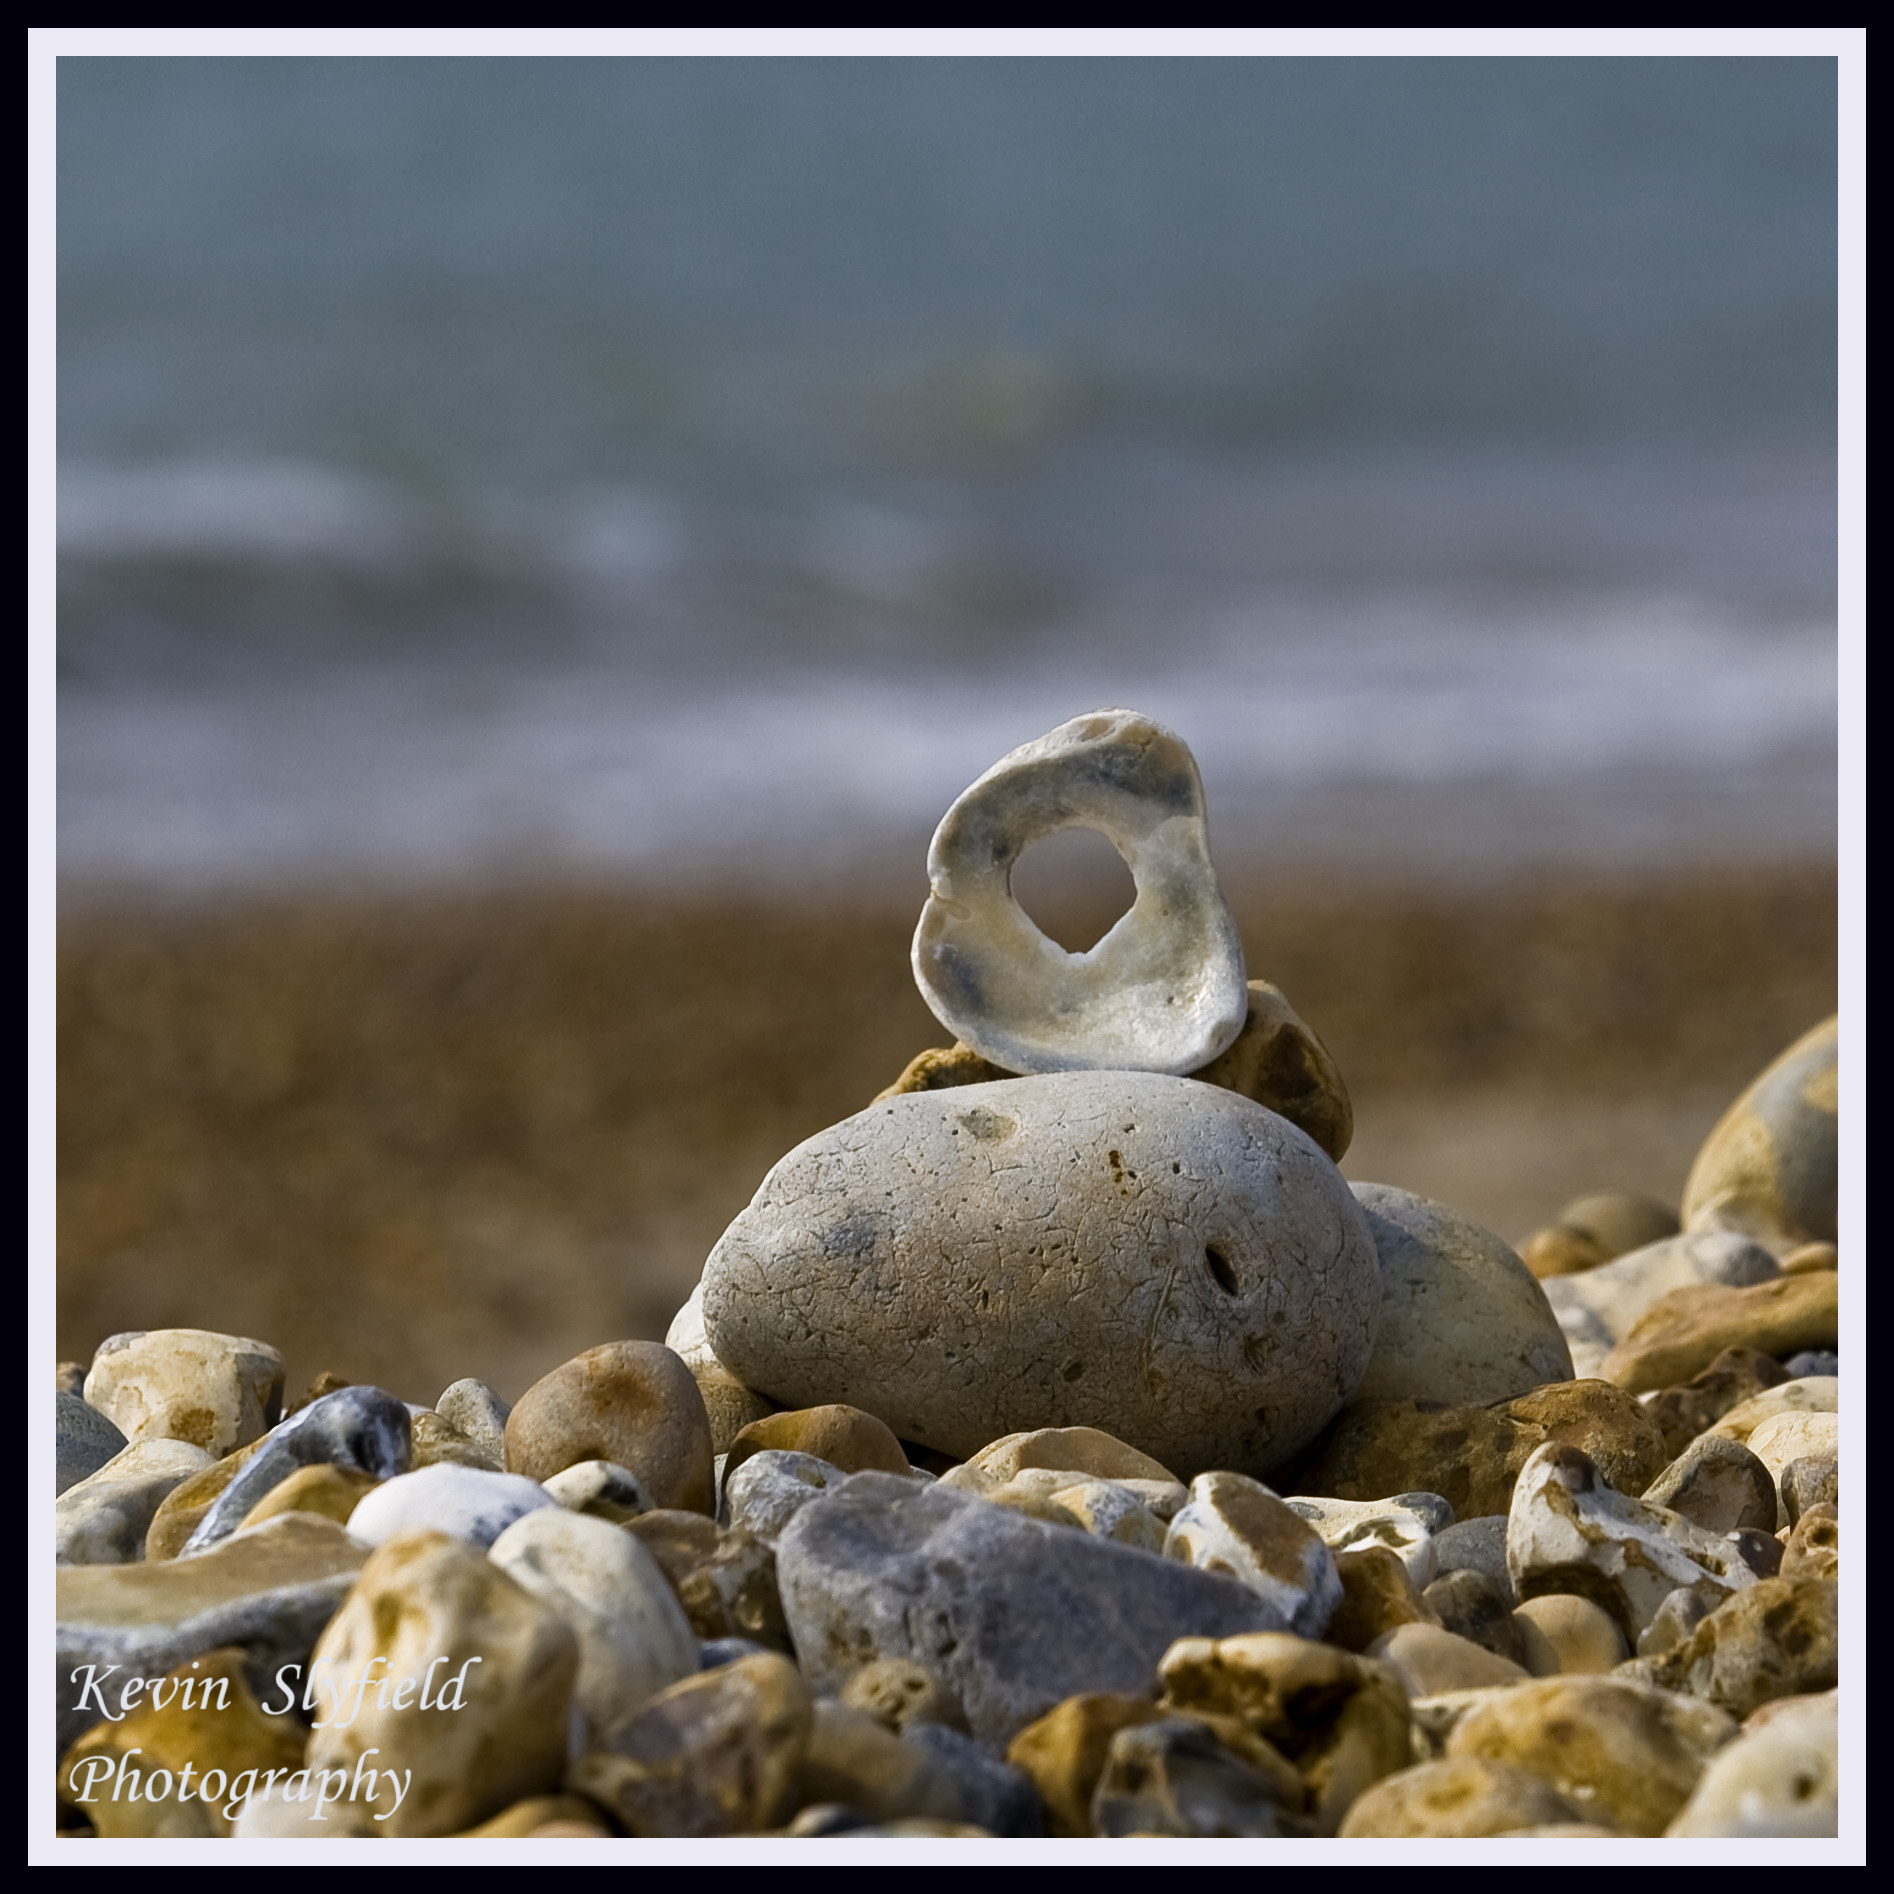 Photograph pebbles by kevinslyfield on 500px